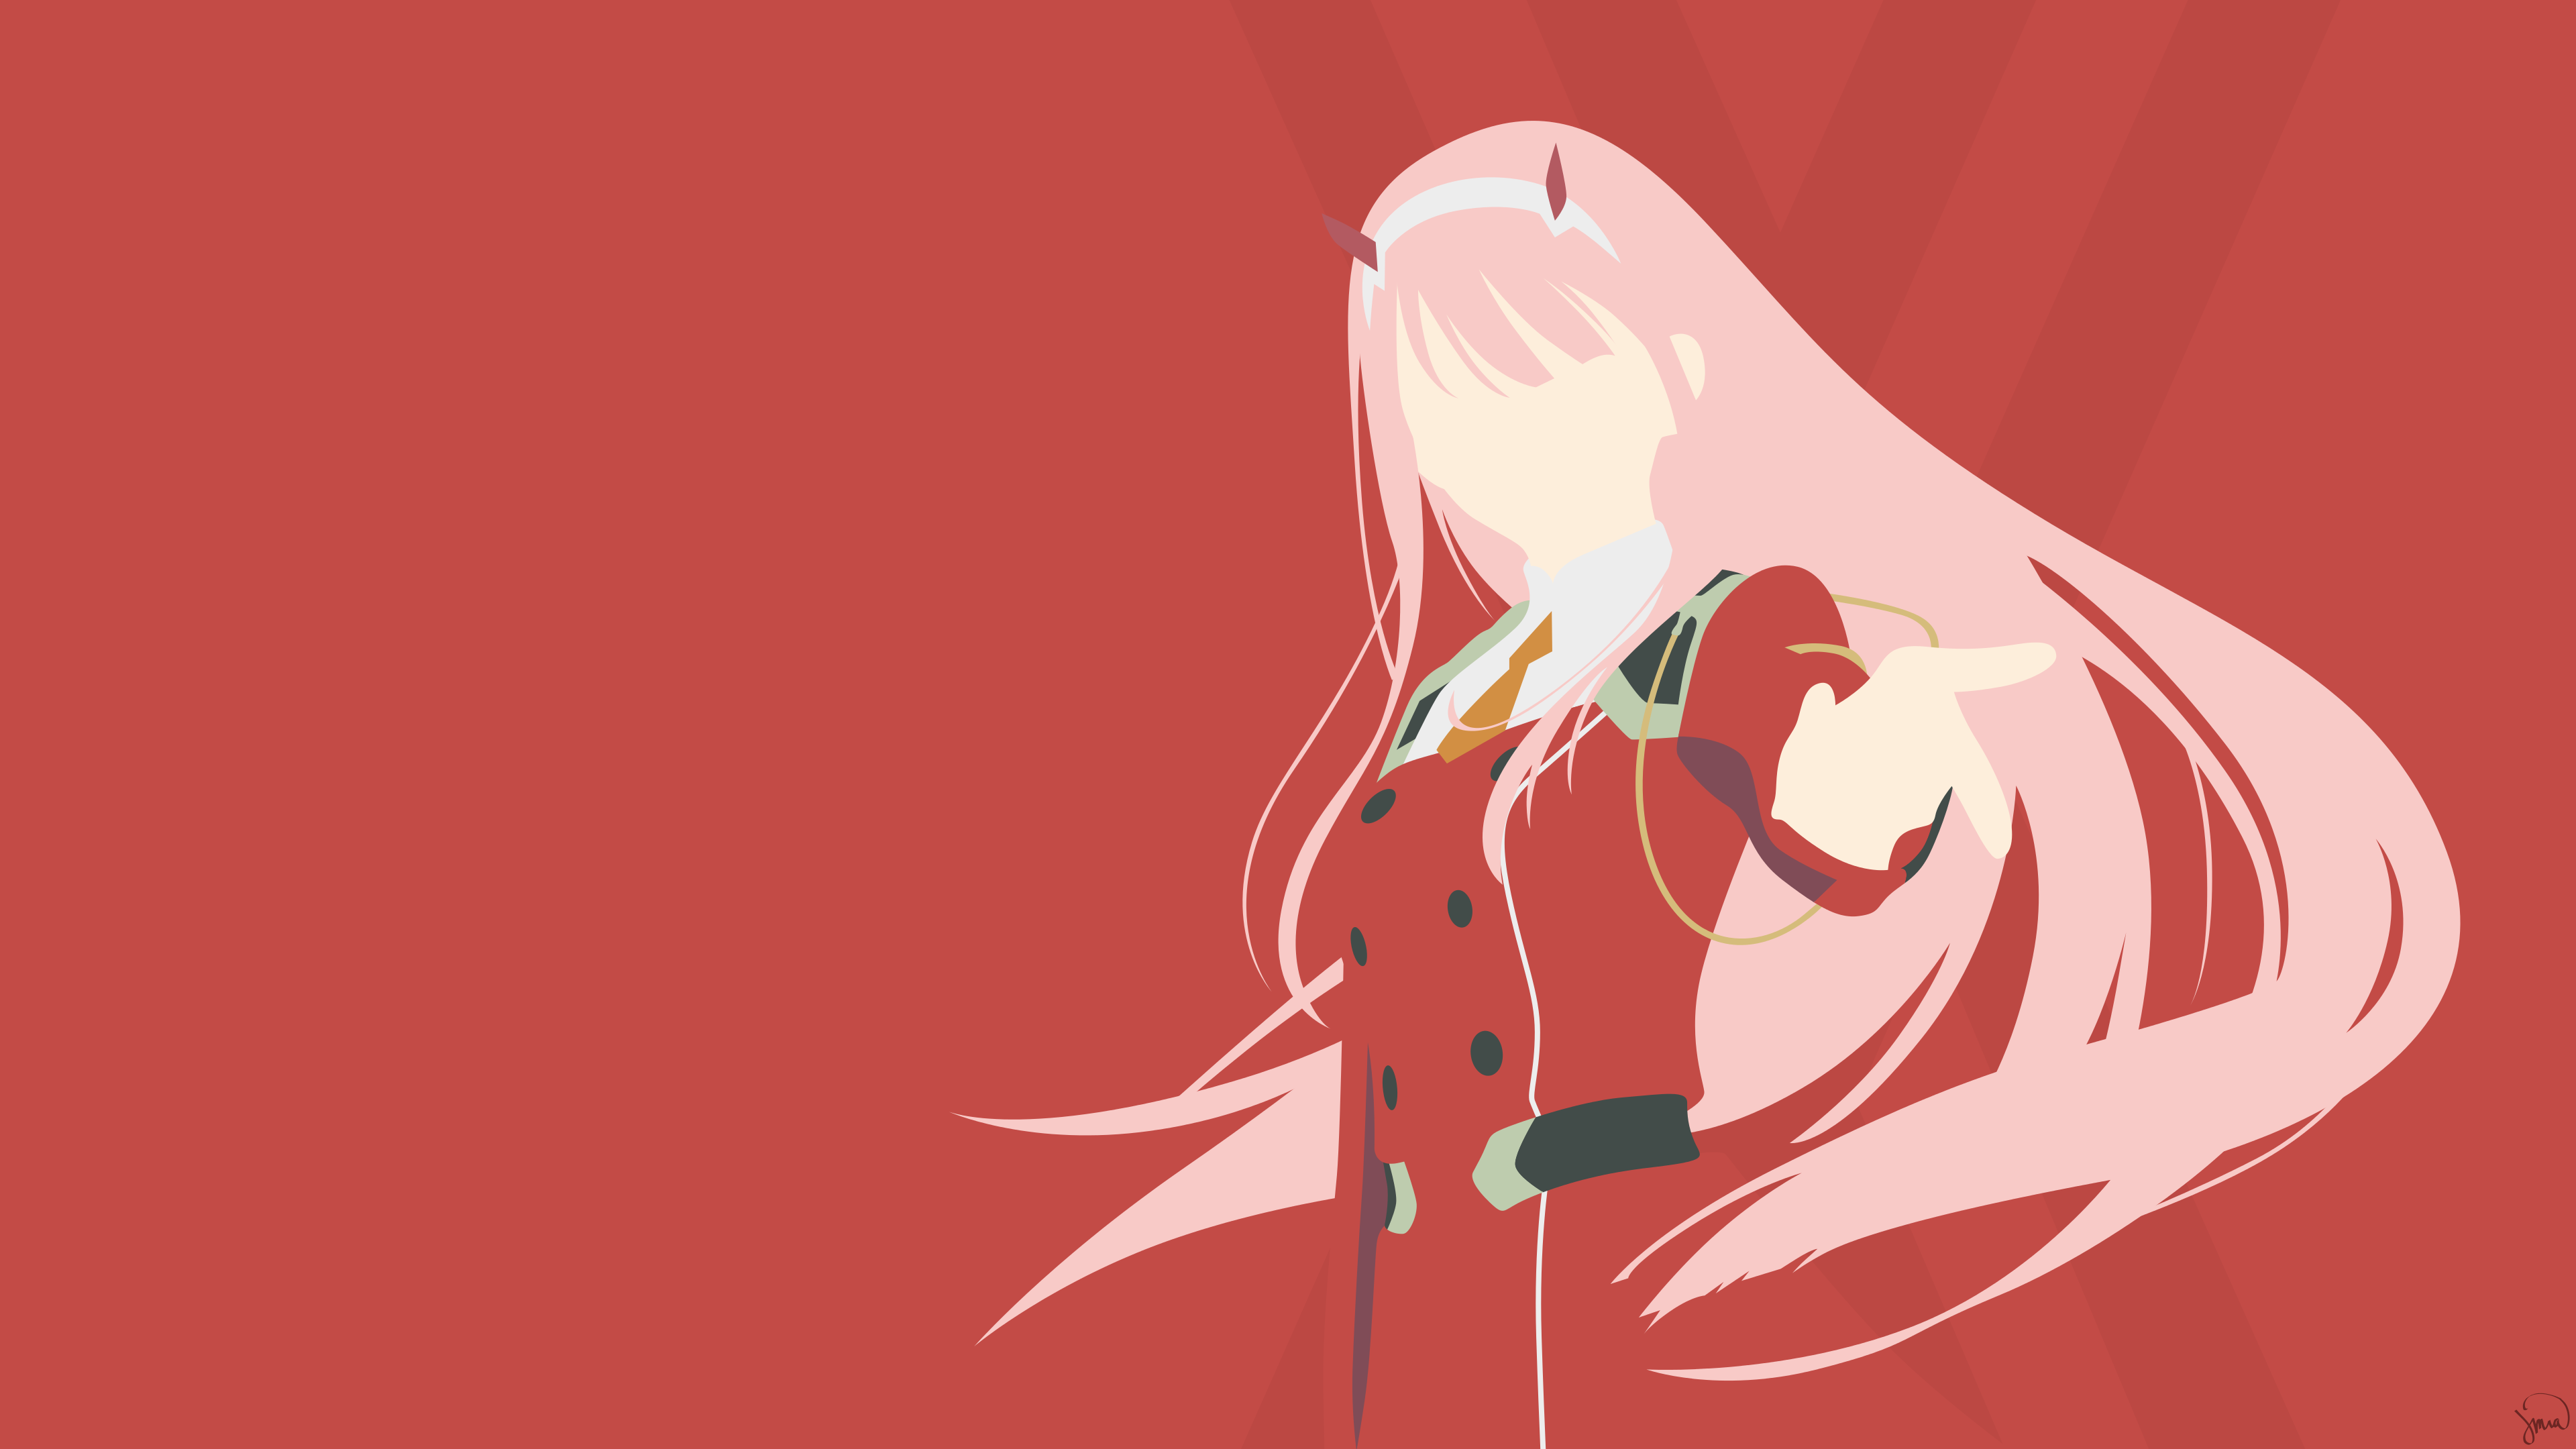 Pin By Wallpaper Hd On Anime Wp Darling In The Franxx Zero Two Anime Artwork Wallpaper